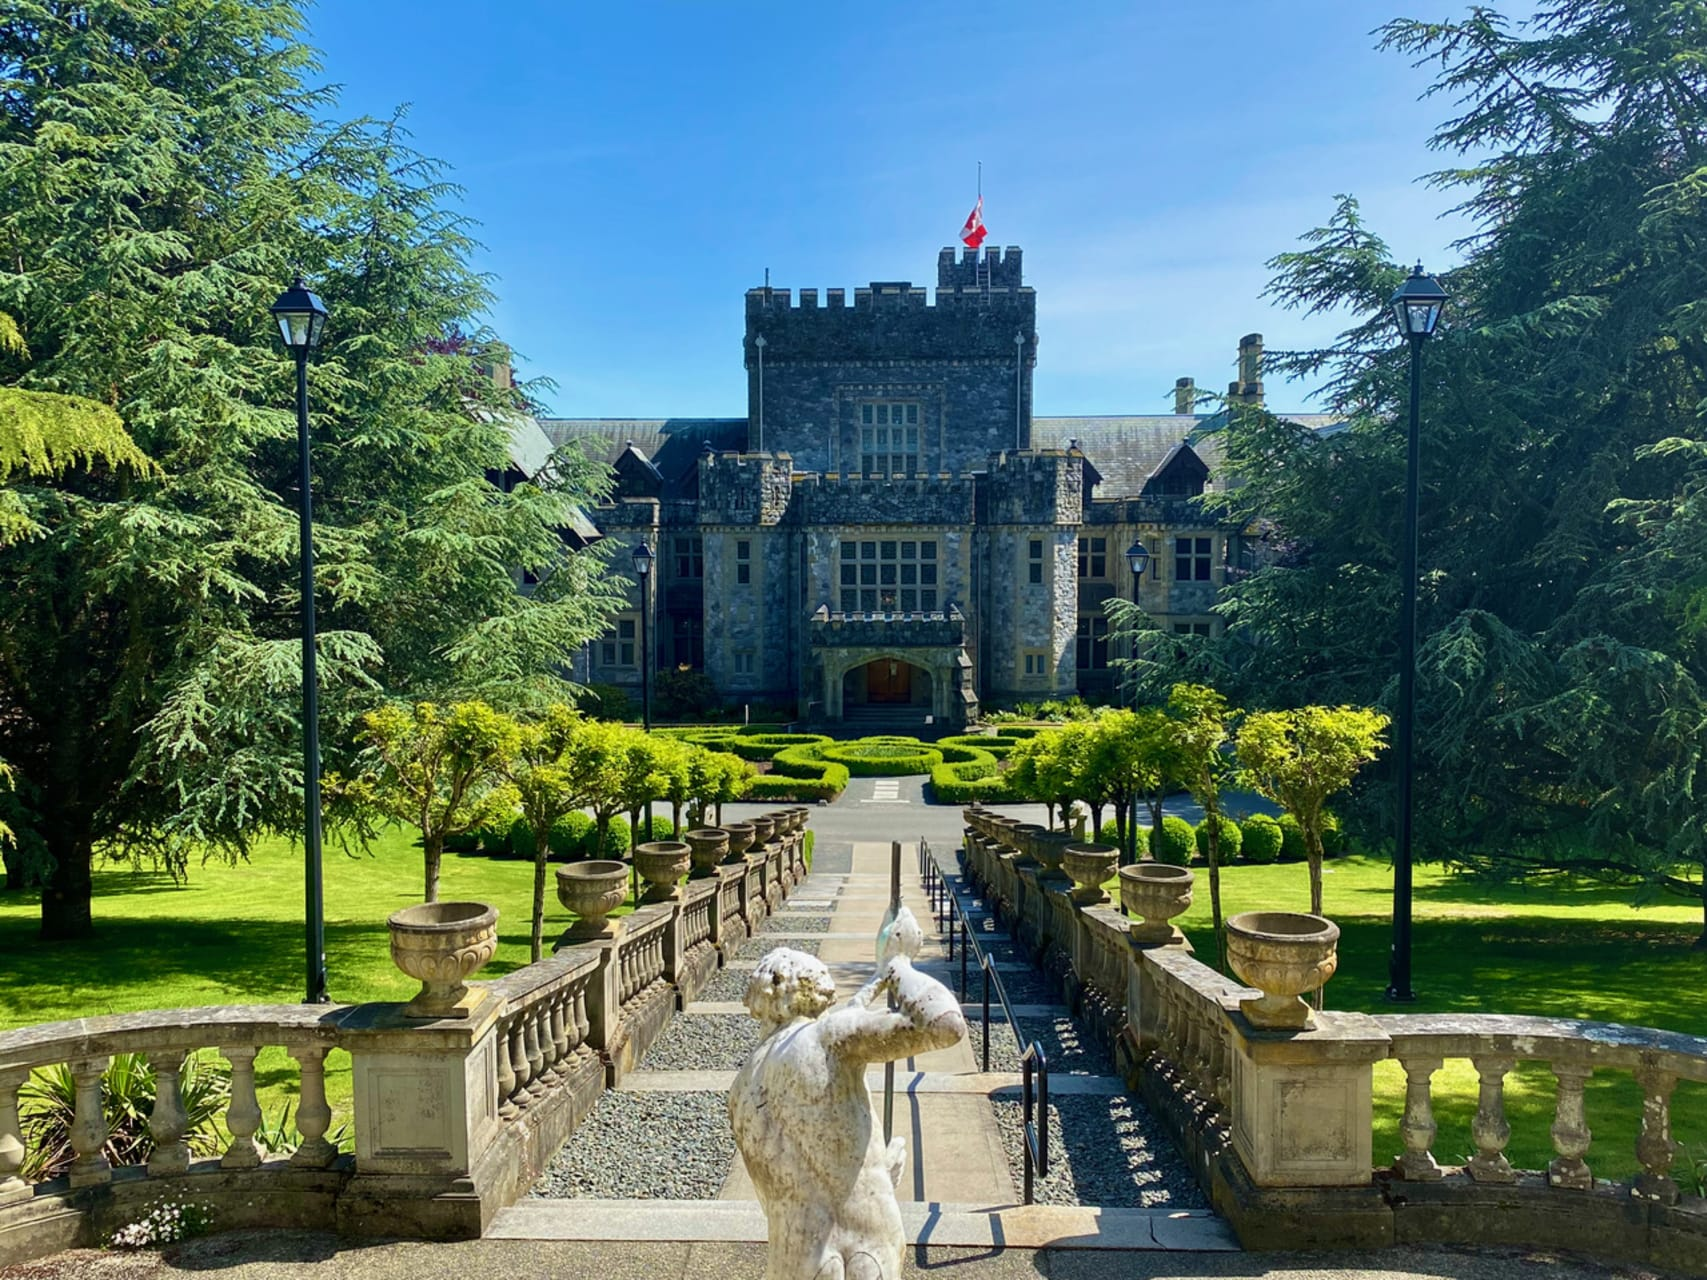 Victoria, BC - Enchanting Royal Roads and Castle in a Forest, by the Sea